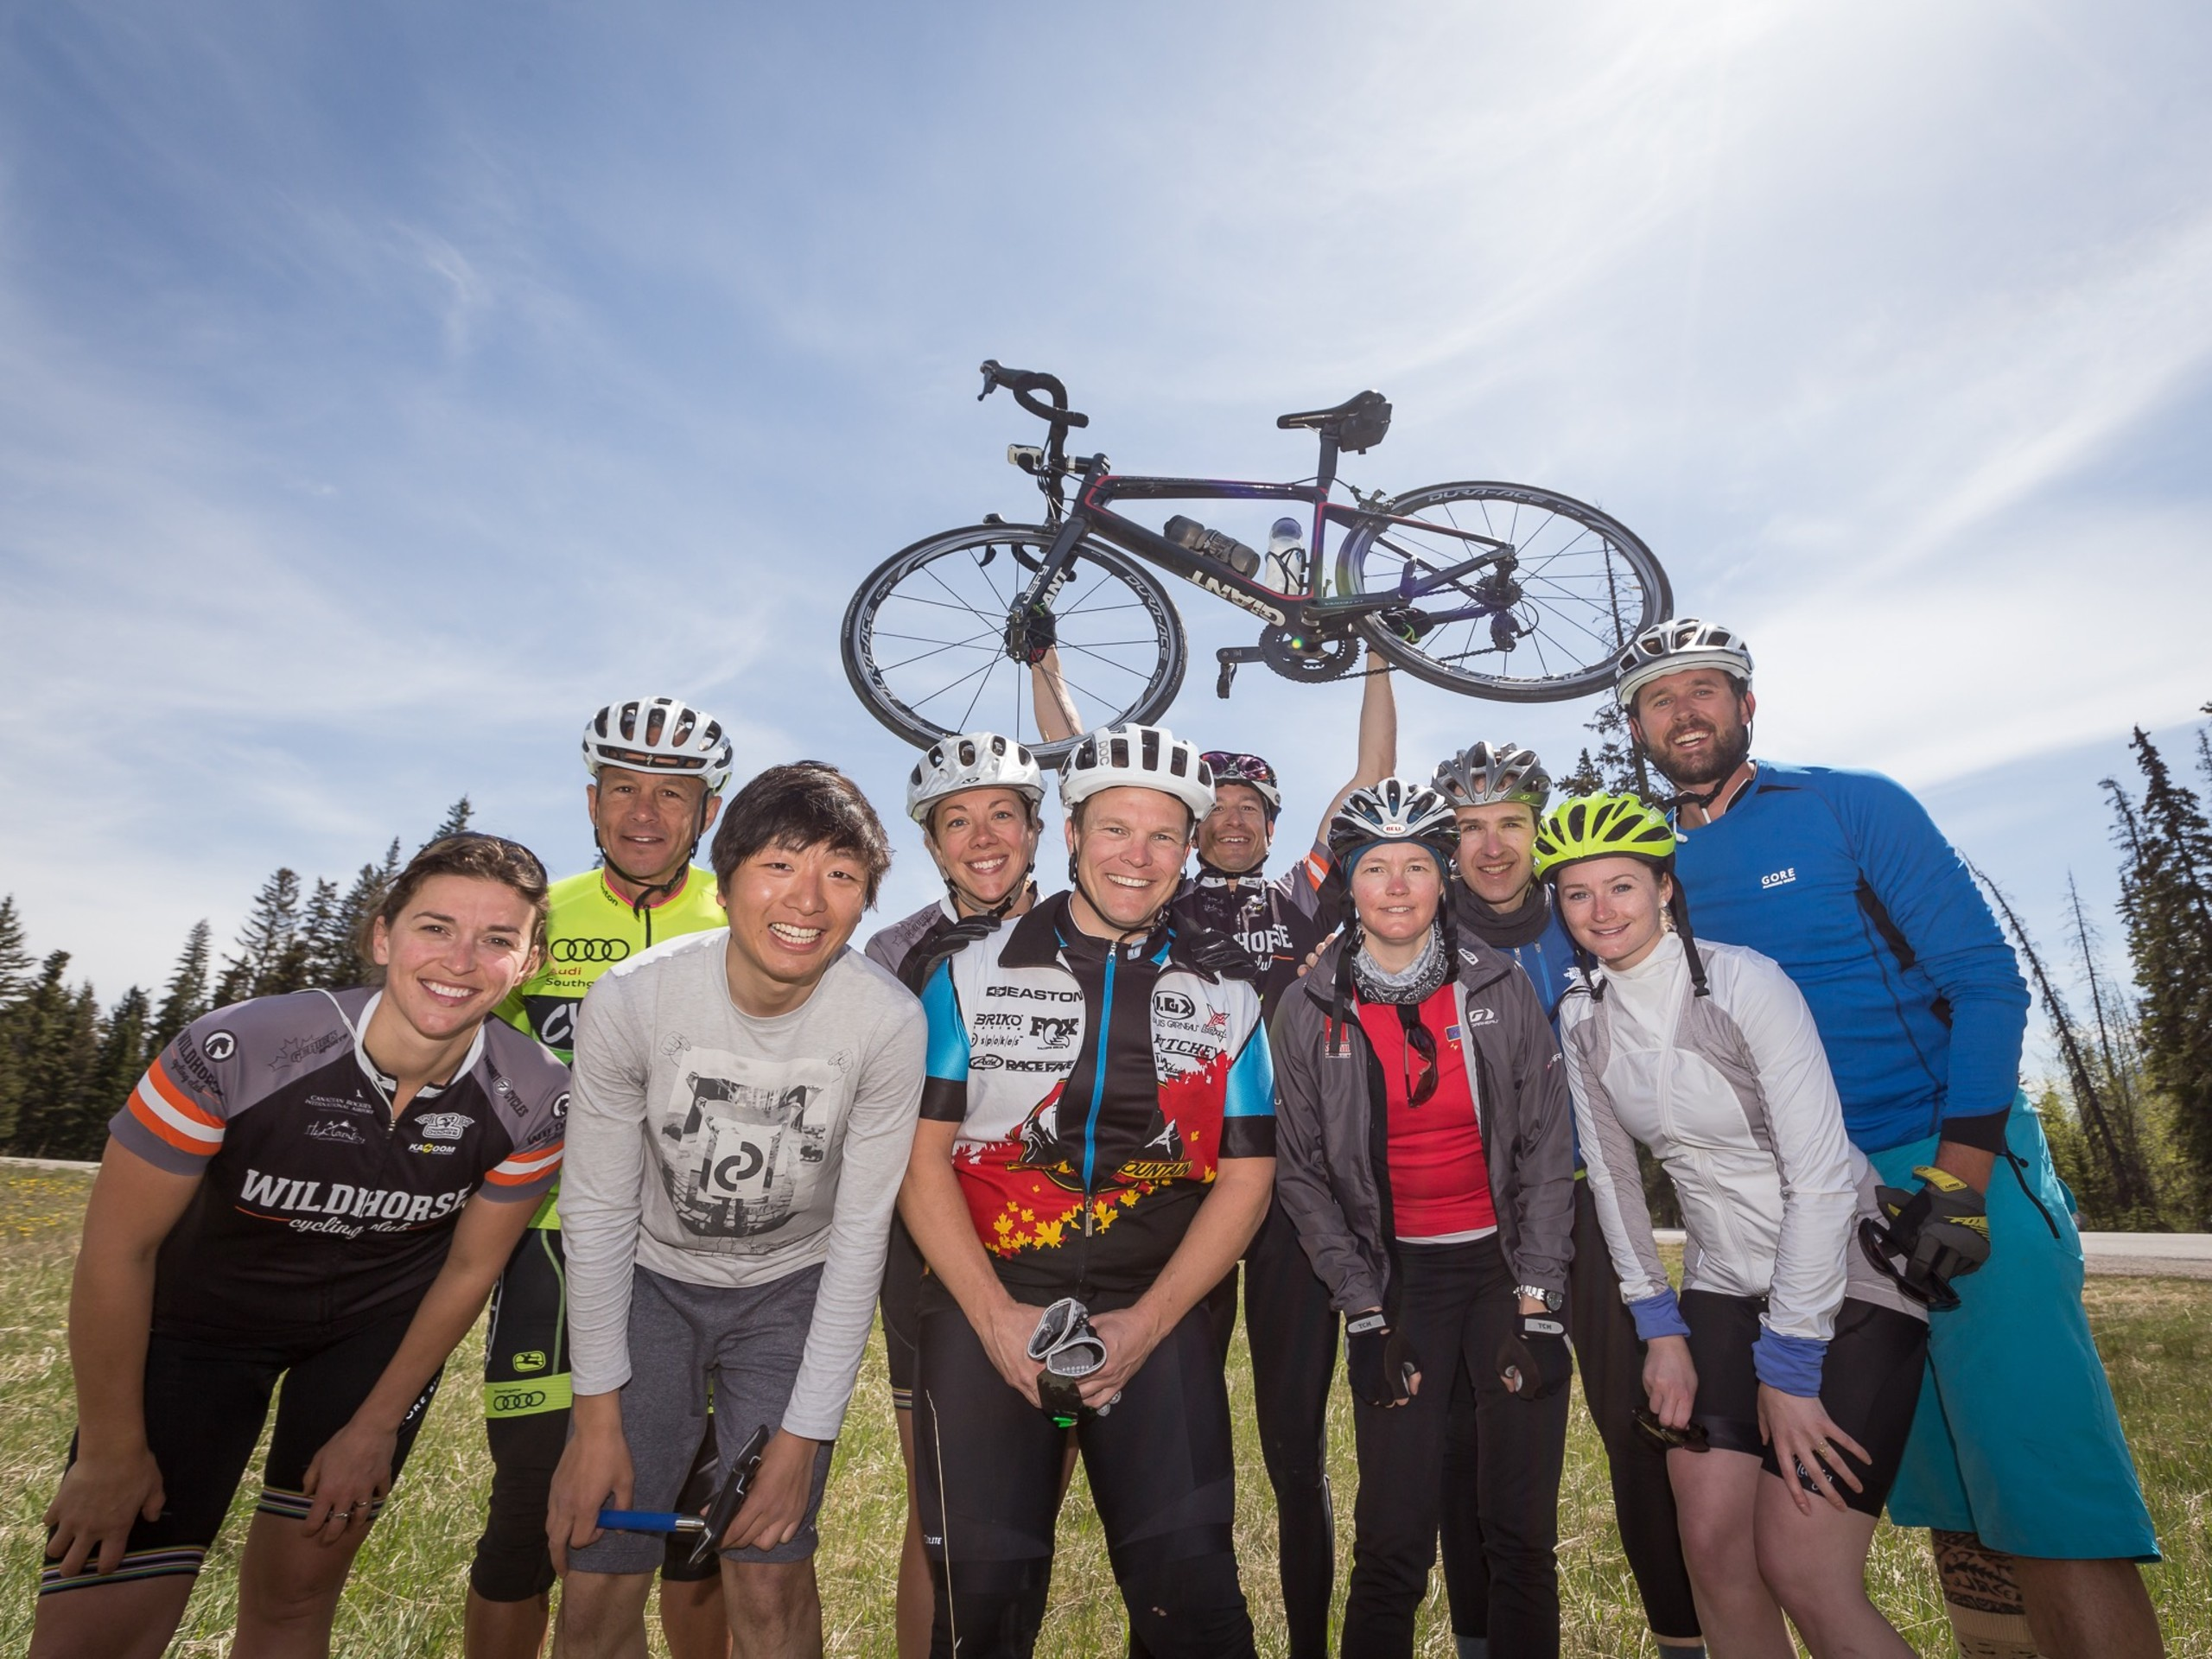 Group of cyclists posing